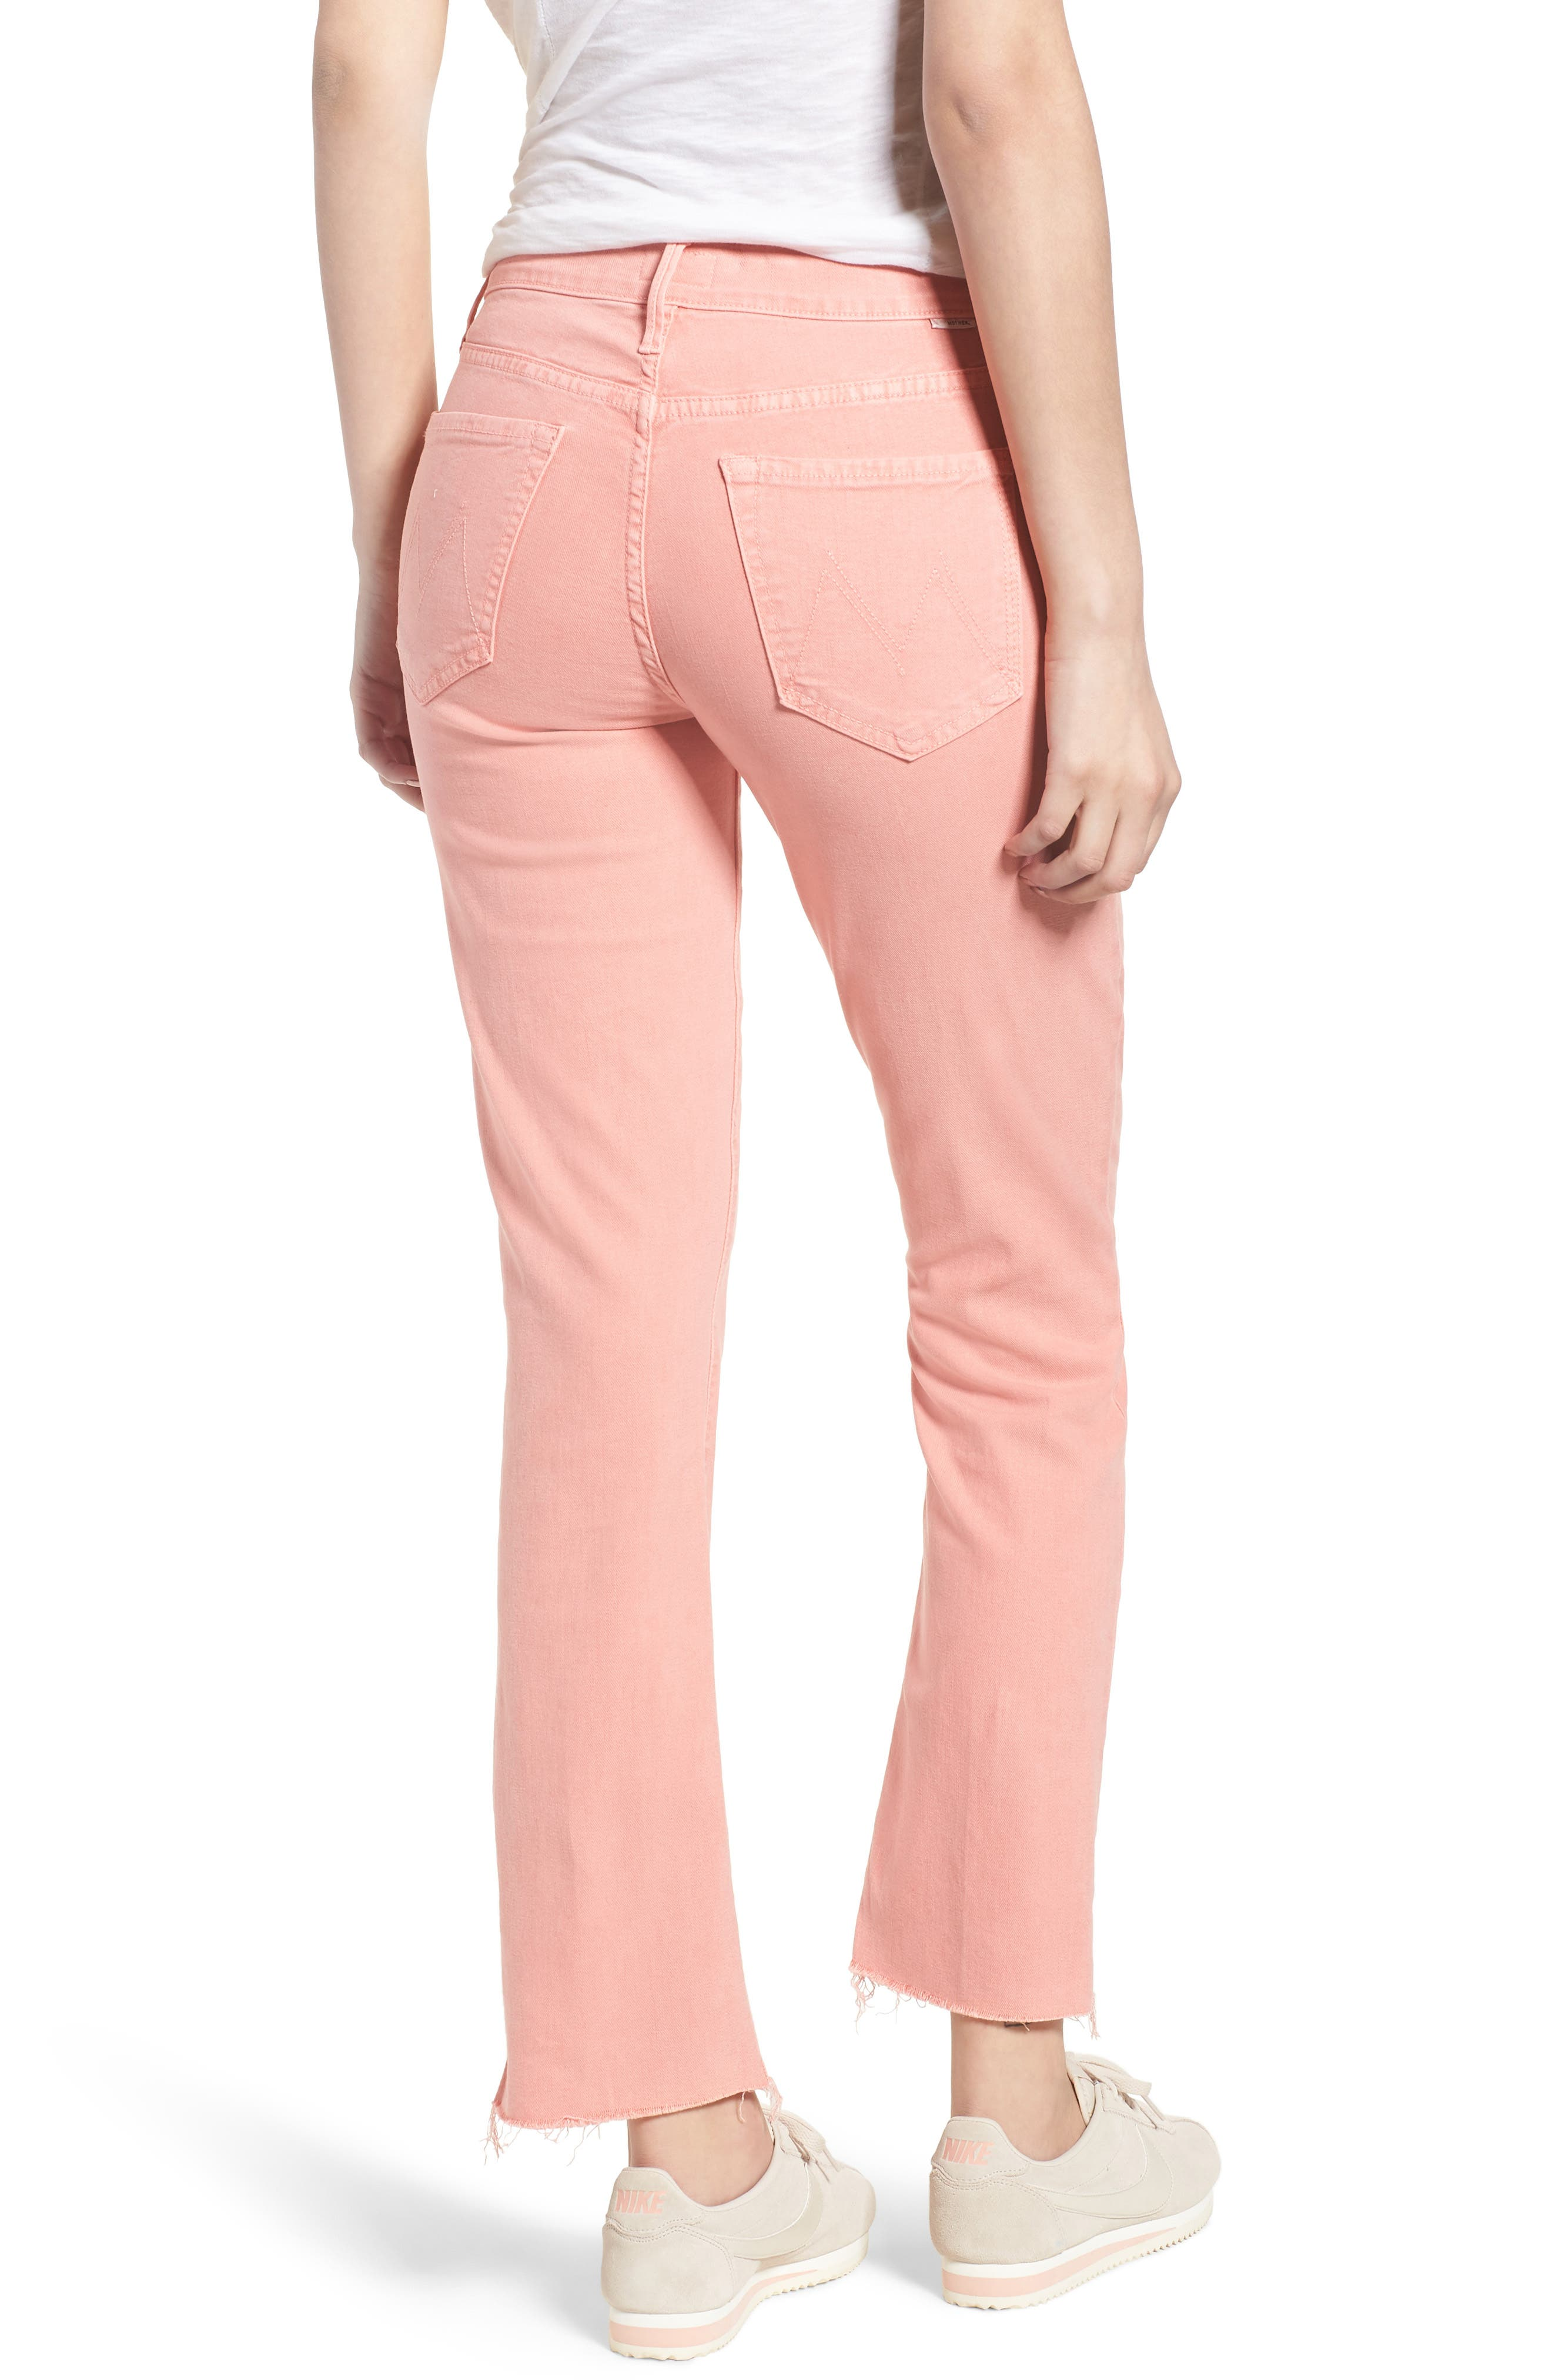 The Rascal Ankle Snippet Jeans,                             Alternate thumbnail 2, color,                             690